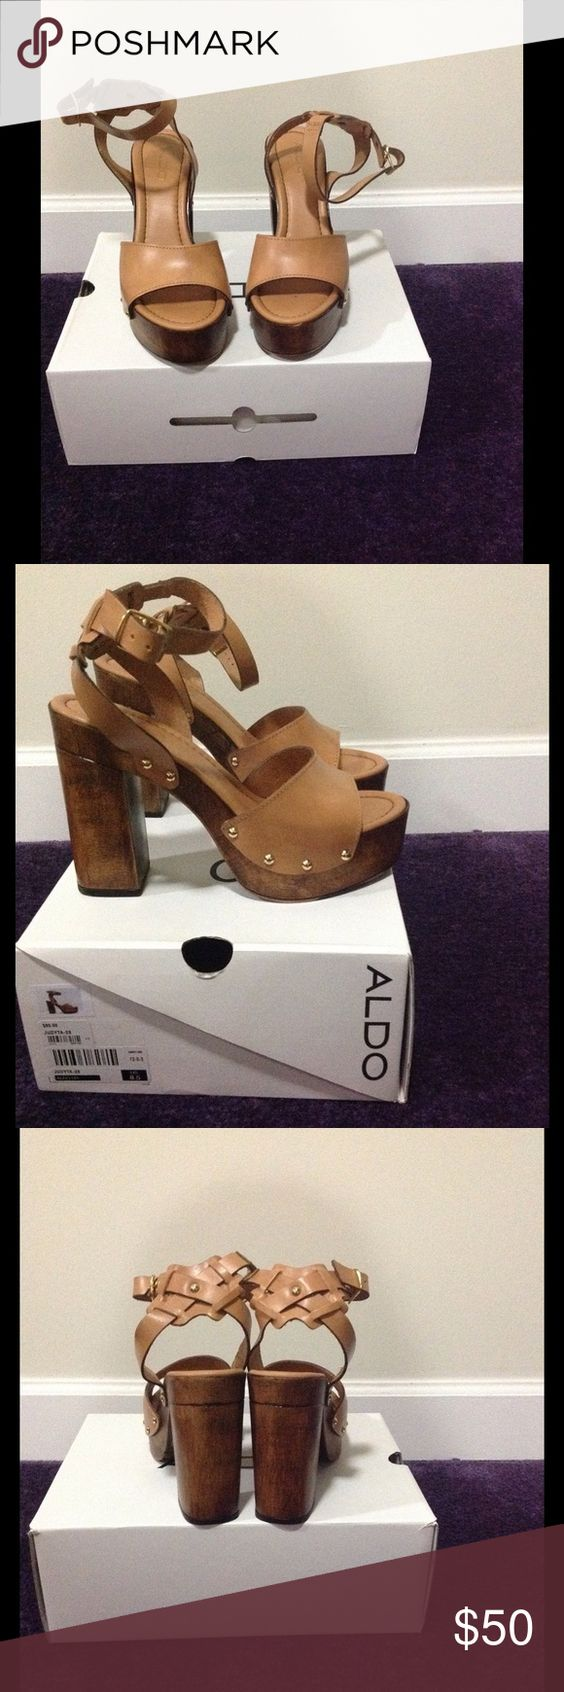 Camel heeled sandal Camel (tan), wood like heeled sandal. Ankle strap. Gold studs around bed of the shoe. Size 8.5 but fits 7.5/8 in my opinion. I am open to offers. Aldo Shoes Platforms